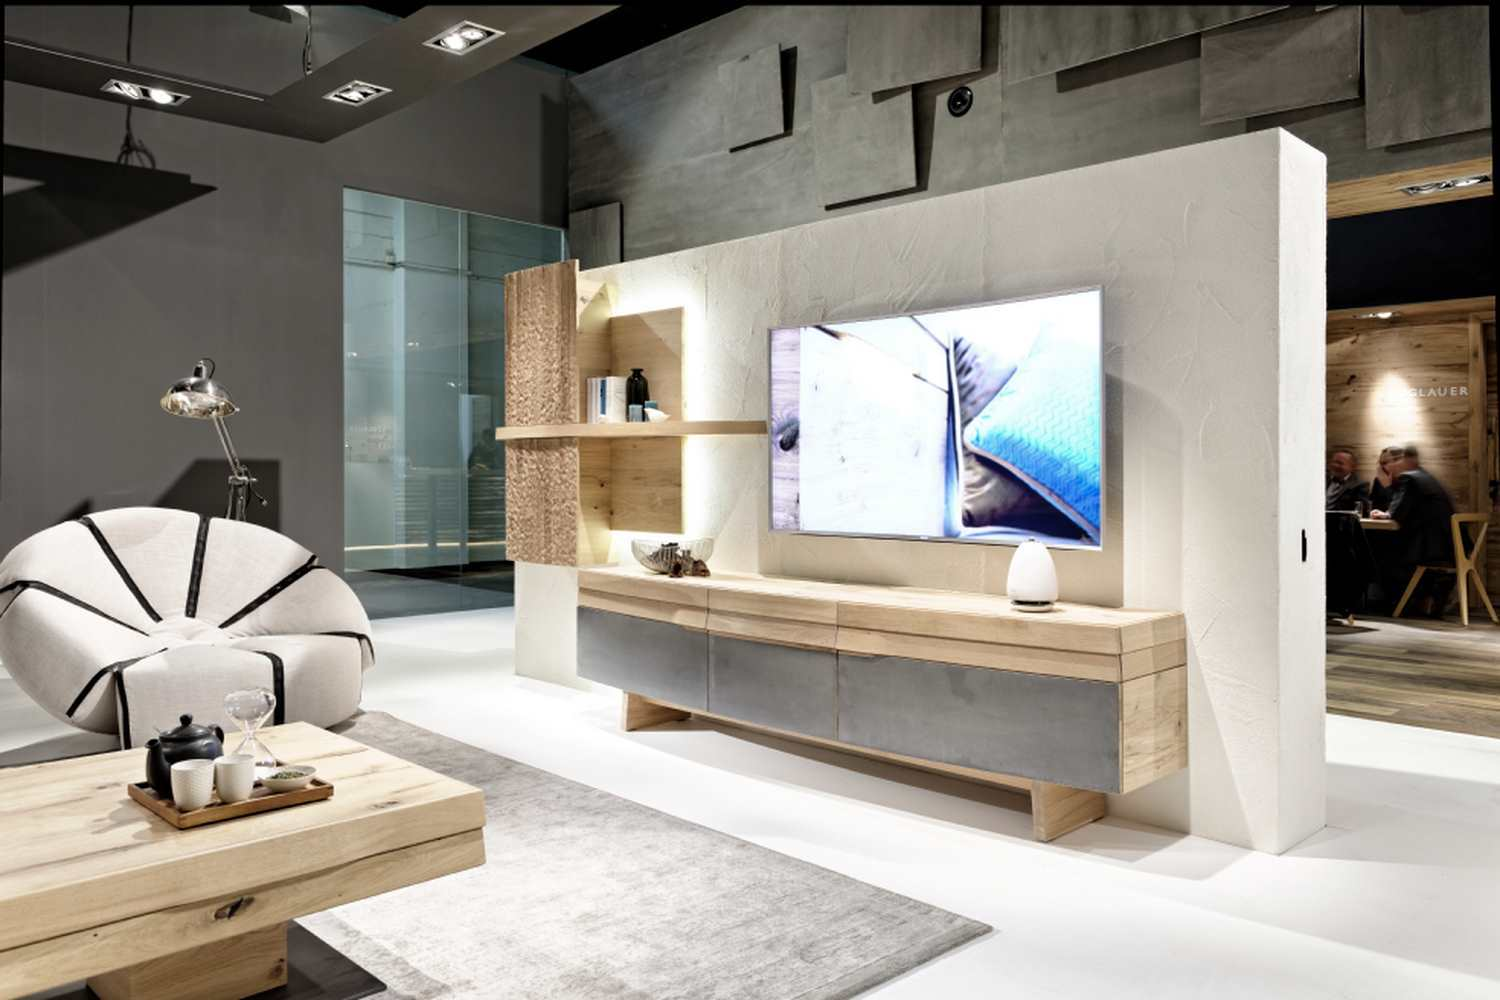 Meuble Tv Haut Avec Table De Salon - Table De Salon Design En Bois Convertible Organo Au Design Allemand[mjhdah]https://fr.imagineoutlet.com/Upload/Thumbnail/Meubles-haut-de-gamme-en-chene-design-allemand-20.jpg